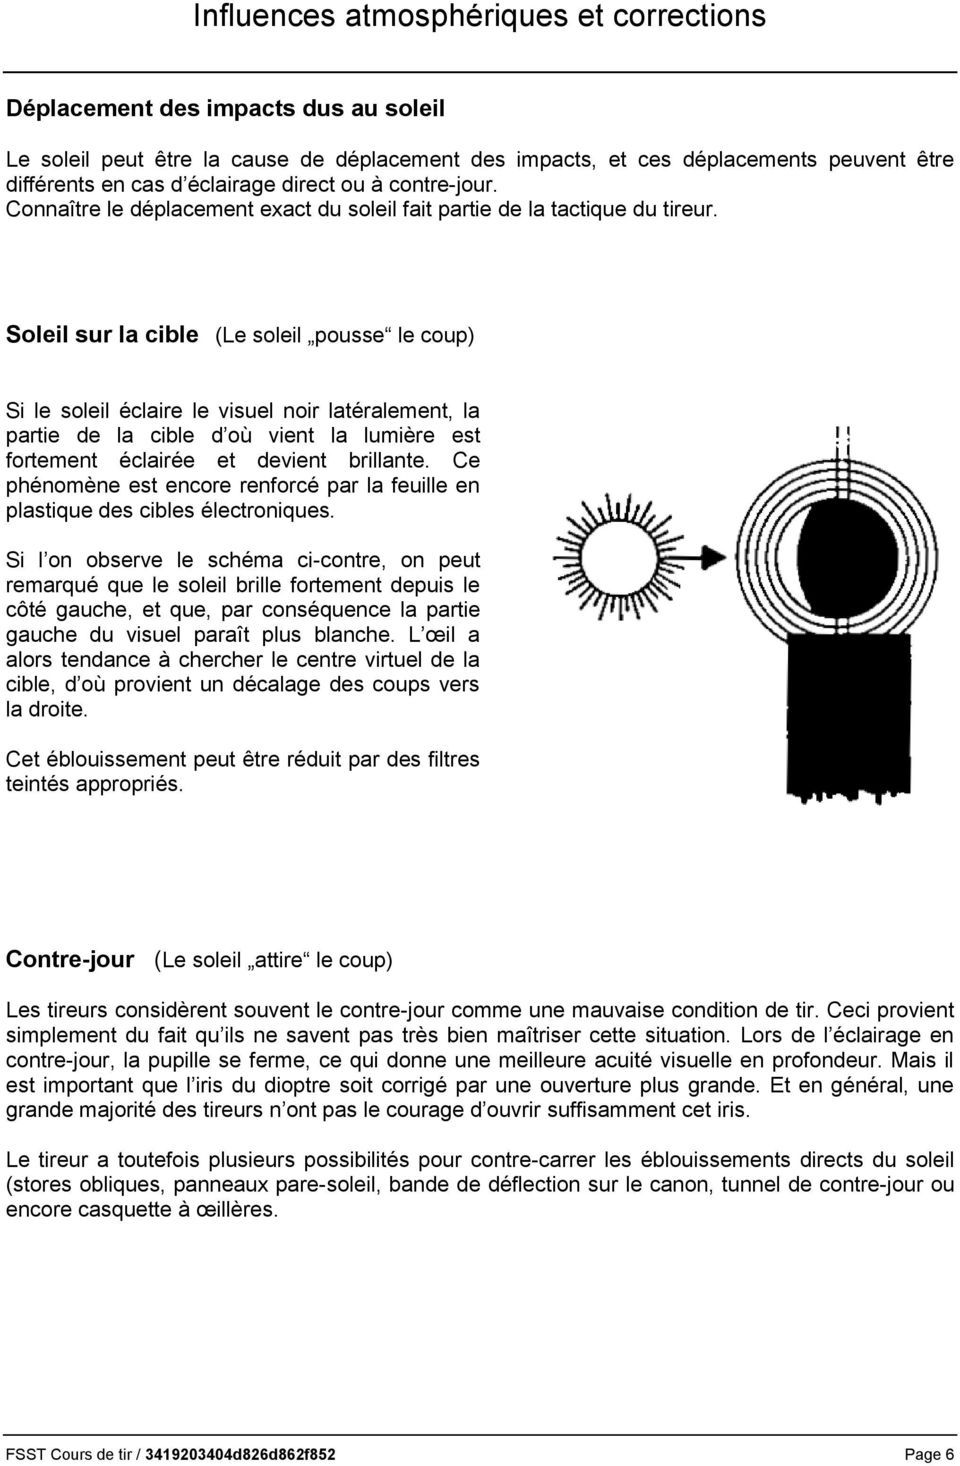 Ouverture et accord dioptre / guidon Page_611